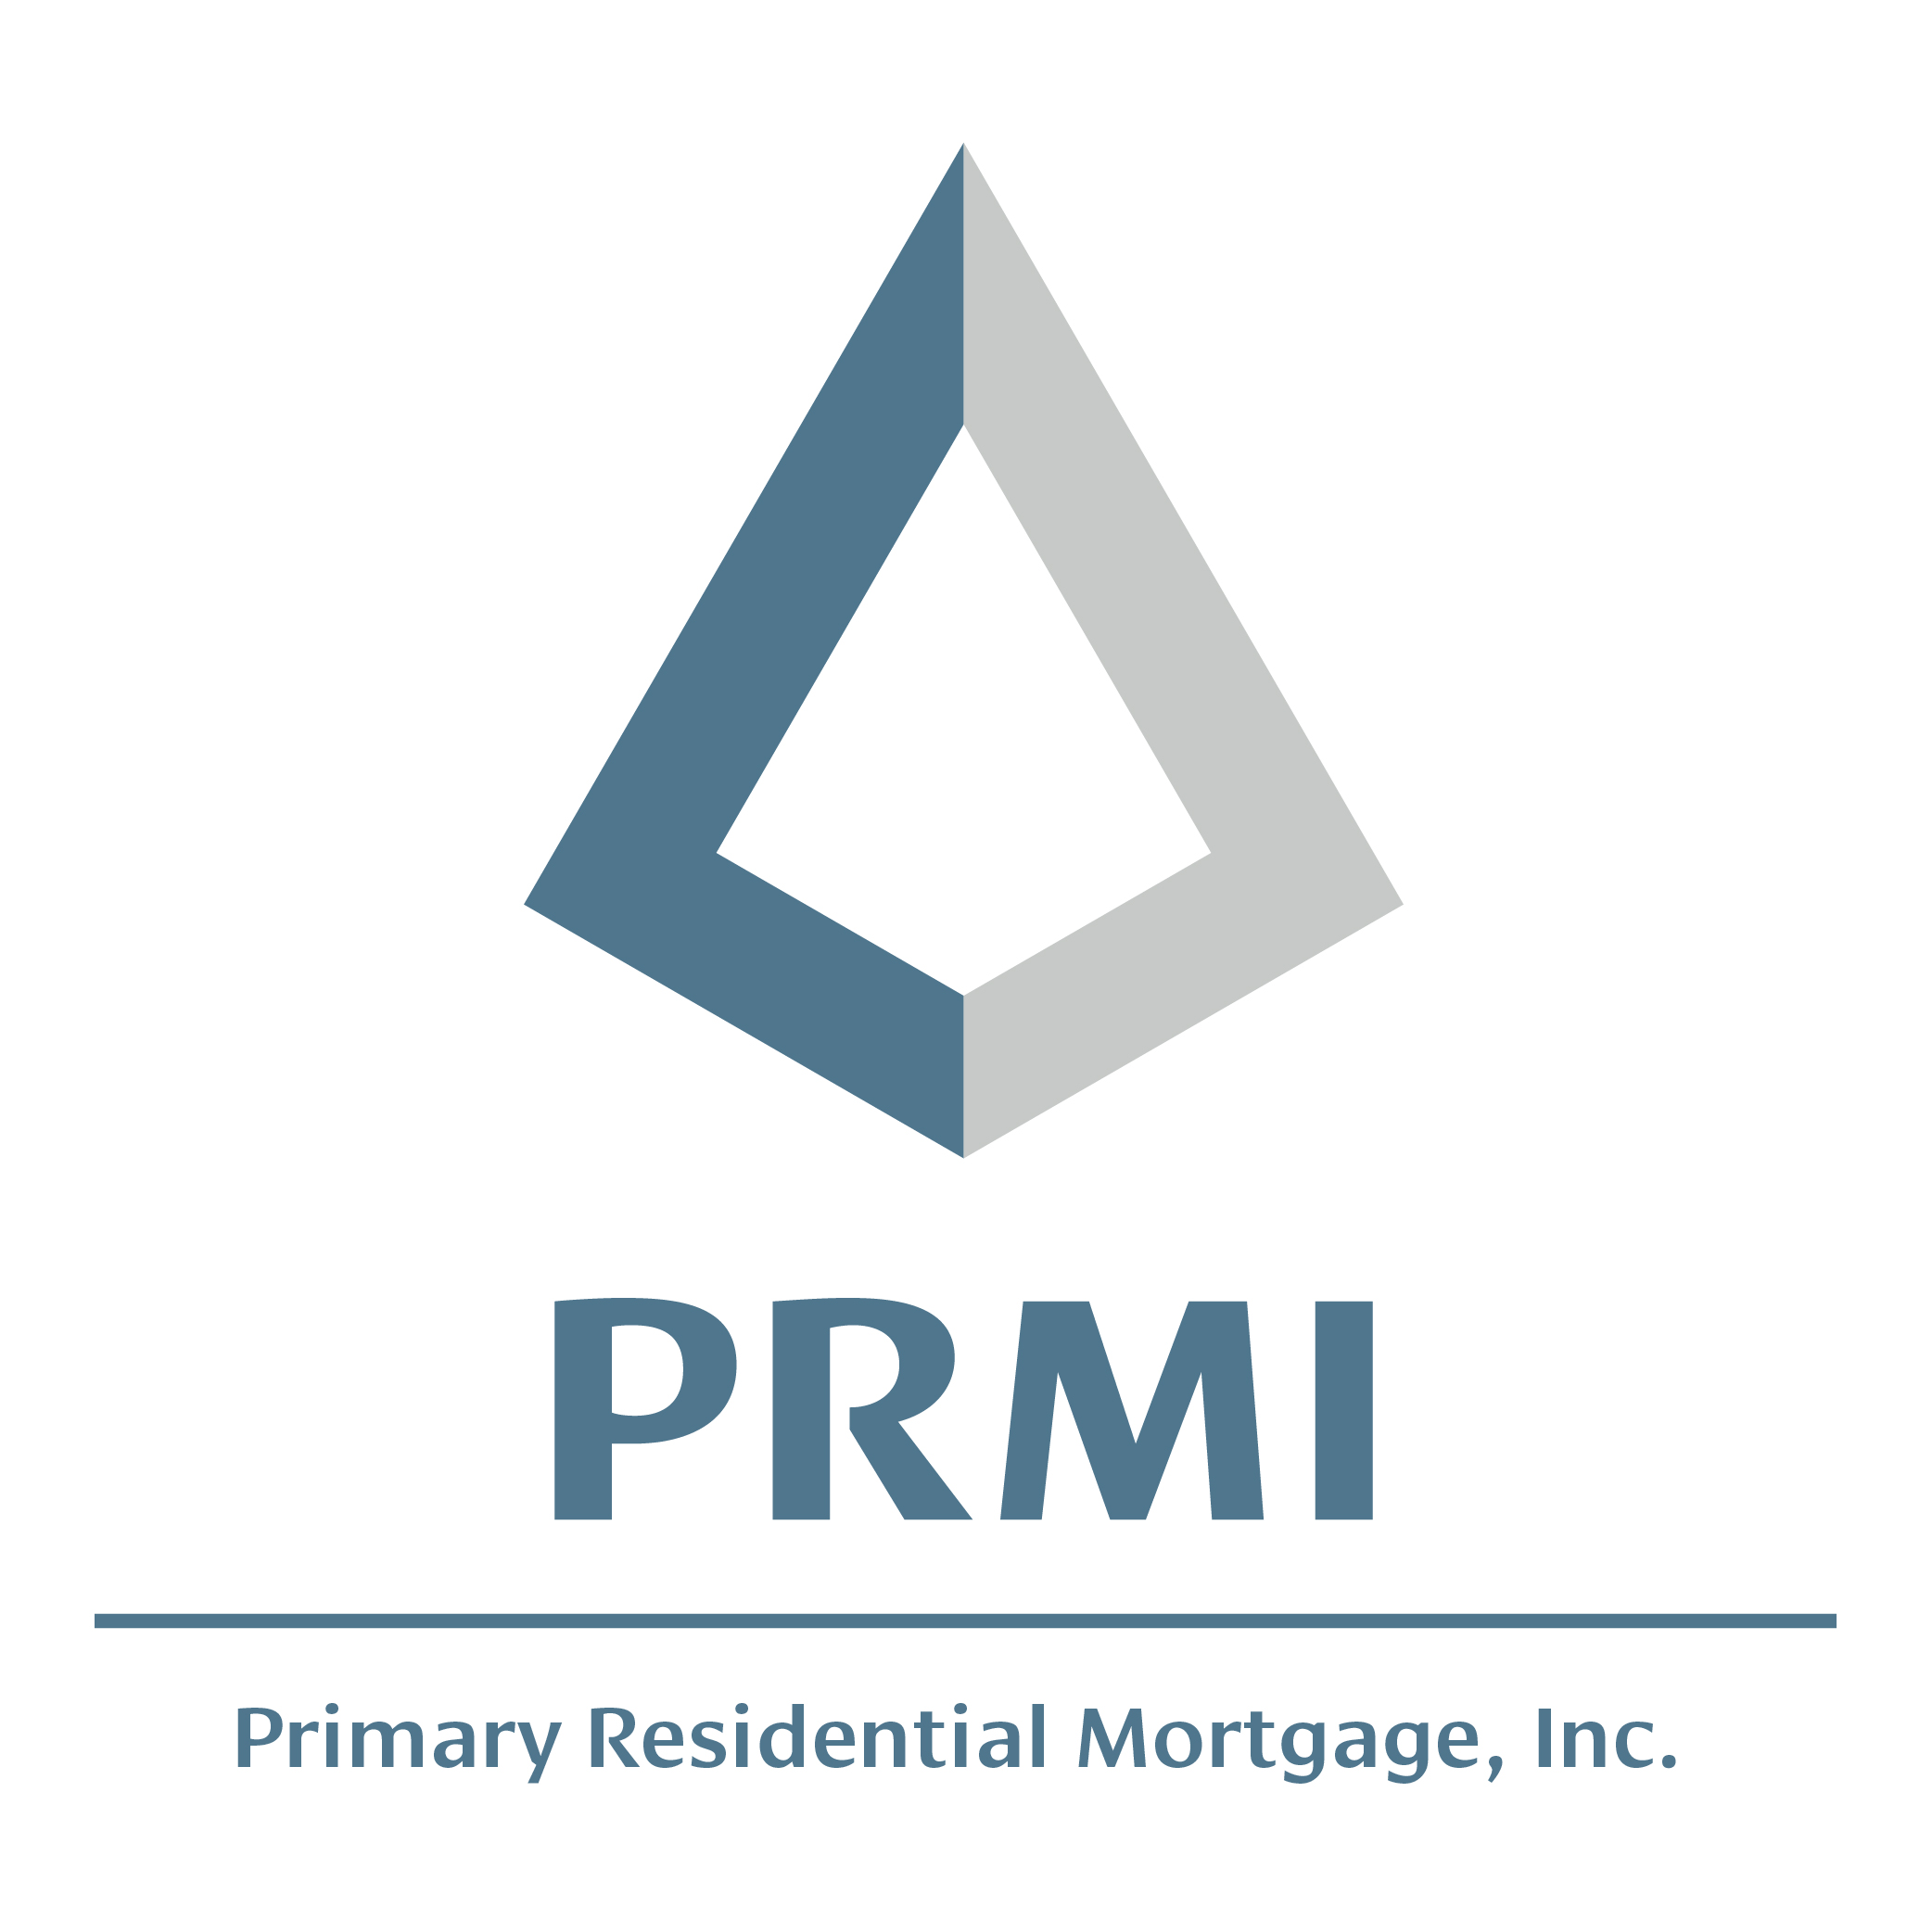 Primary Residential Mortgage, Inc. - West Palm Beach, FL 33407 - (561)531-5831 | ShowMeLocal.com